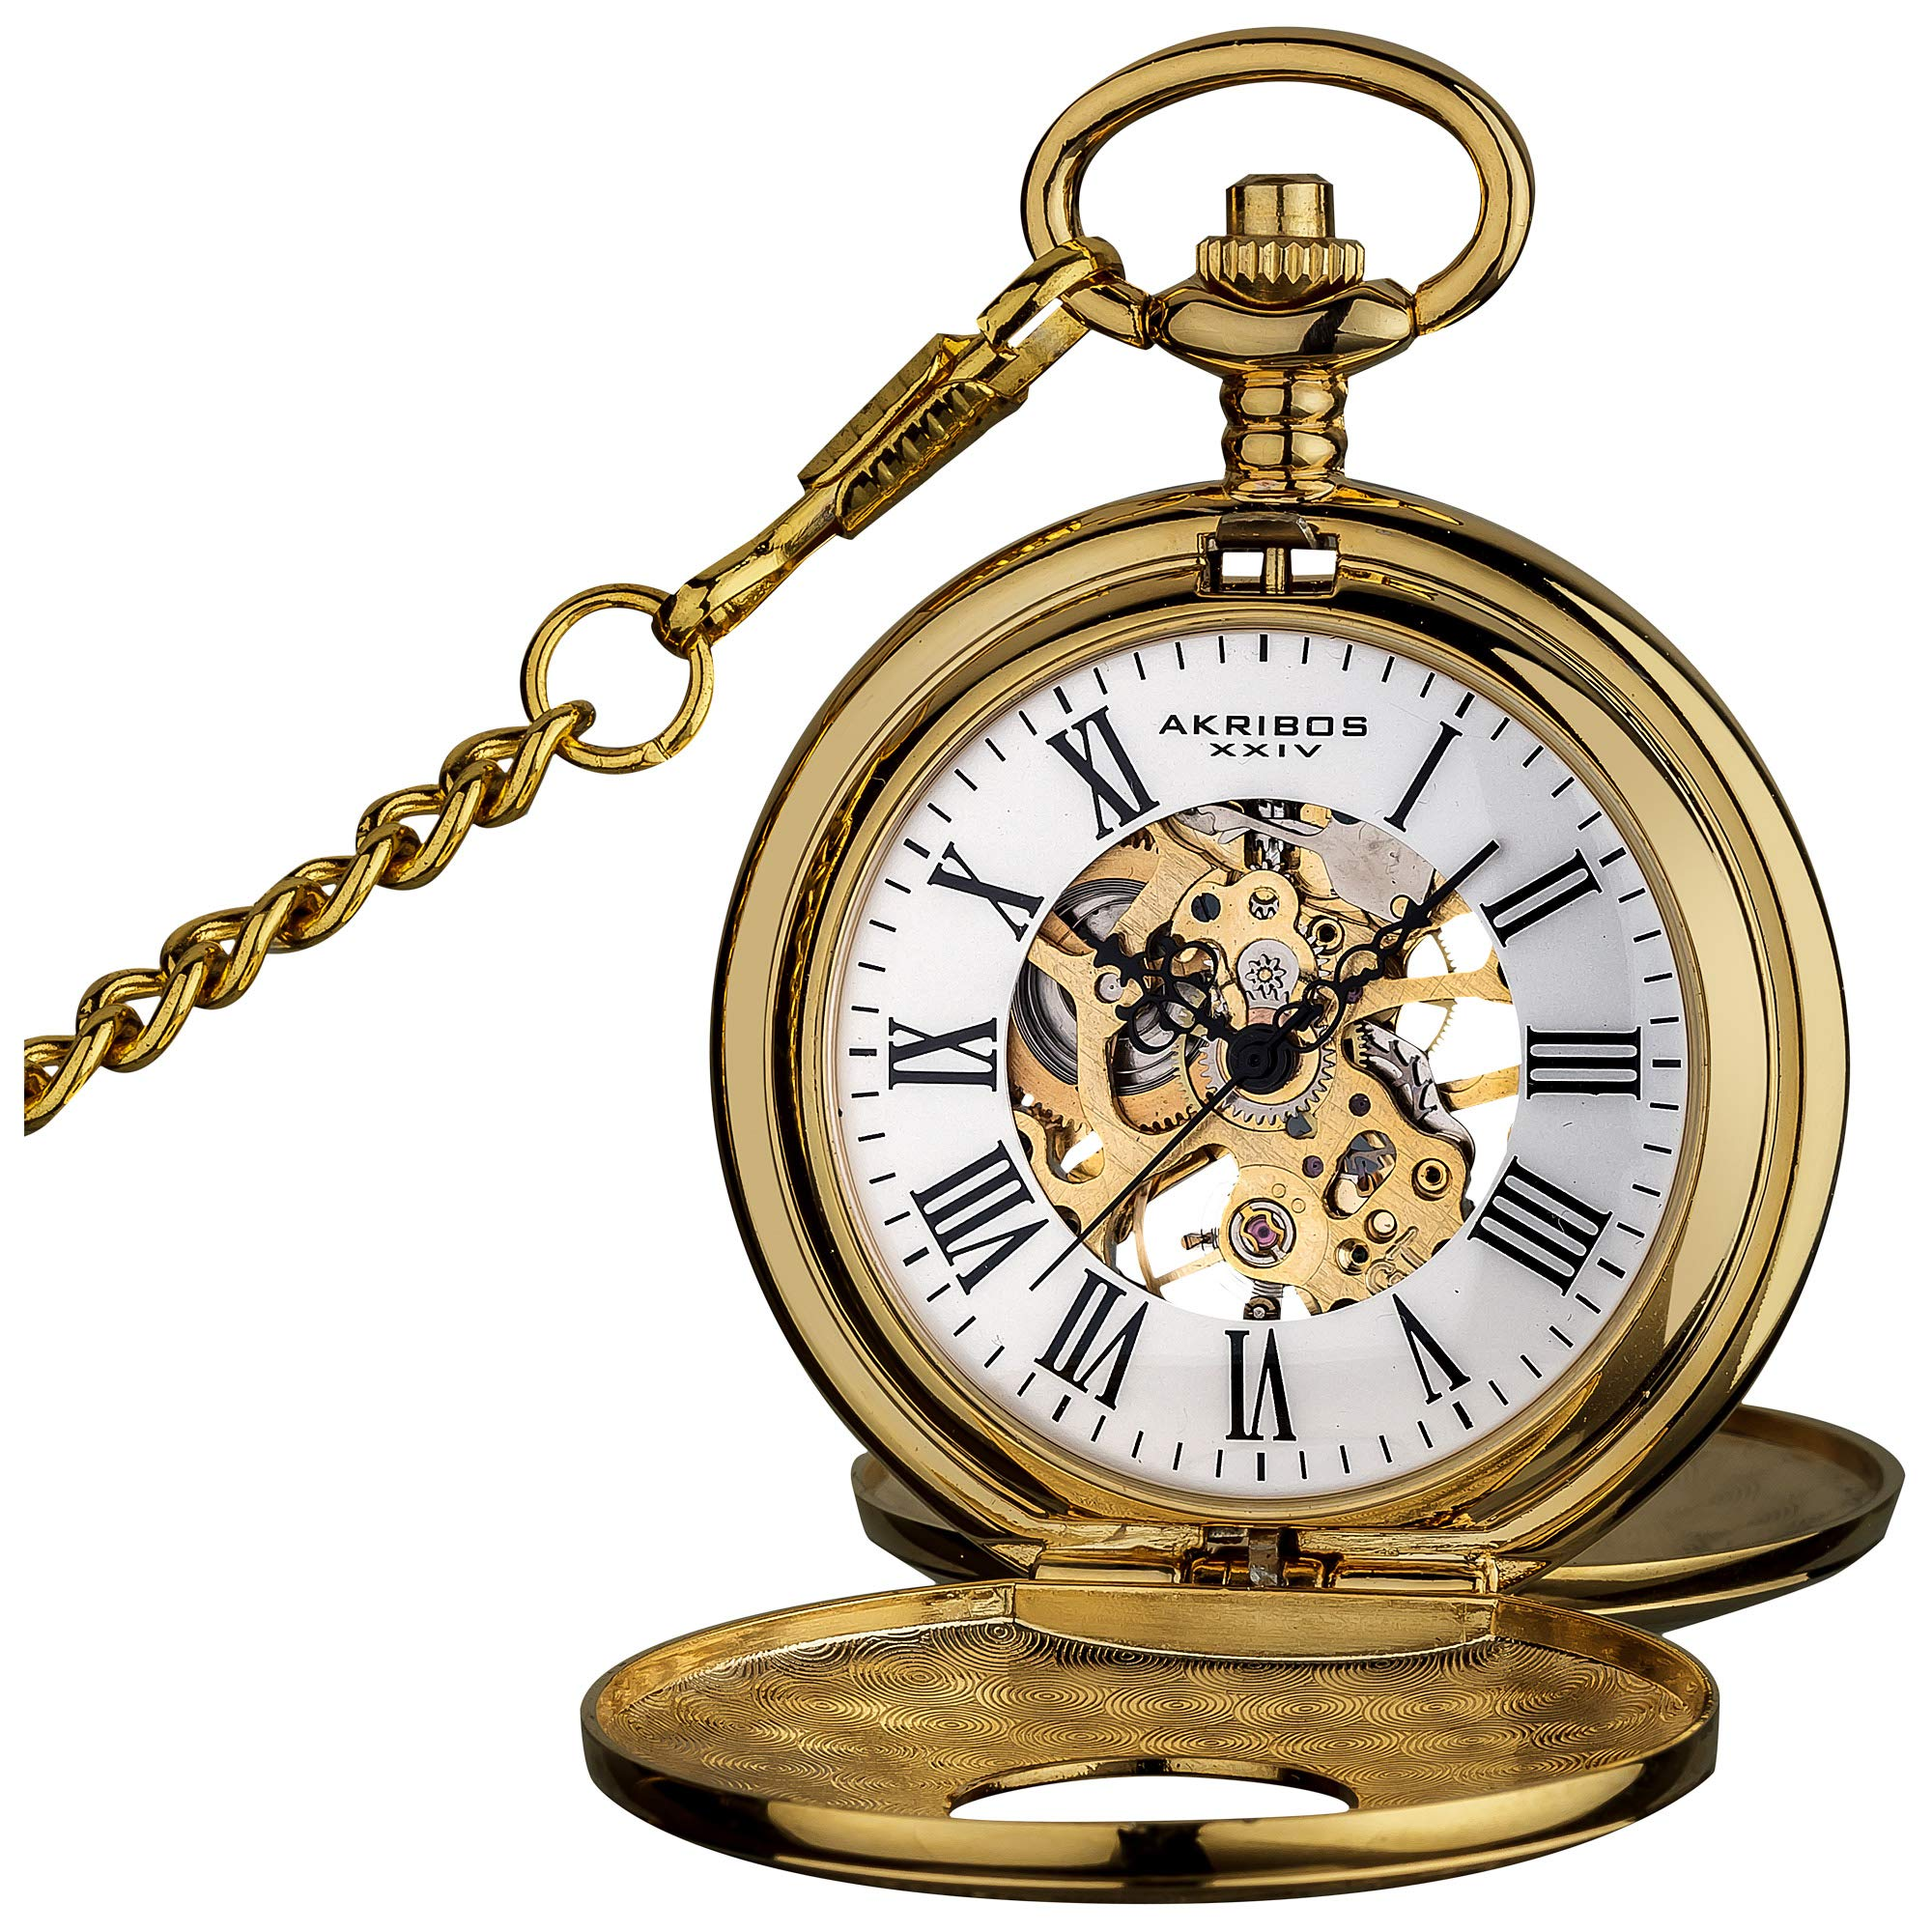 Akribos XXIV ''Bravura'' Mechanical Pocket Watch - Mechanical Hand-Wind Movement On a Skeleton Dial Comes With Cover and Chain - AK609 by Akribos XXIV